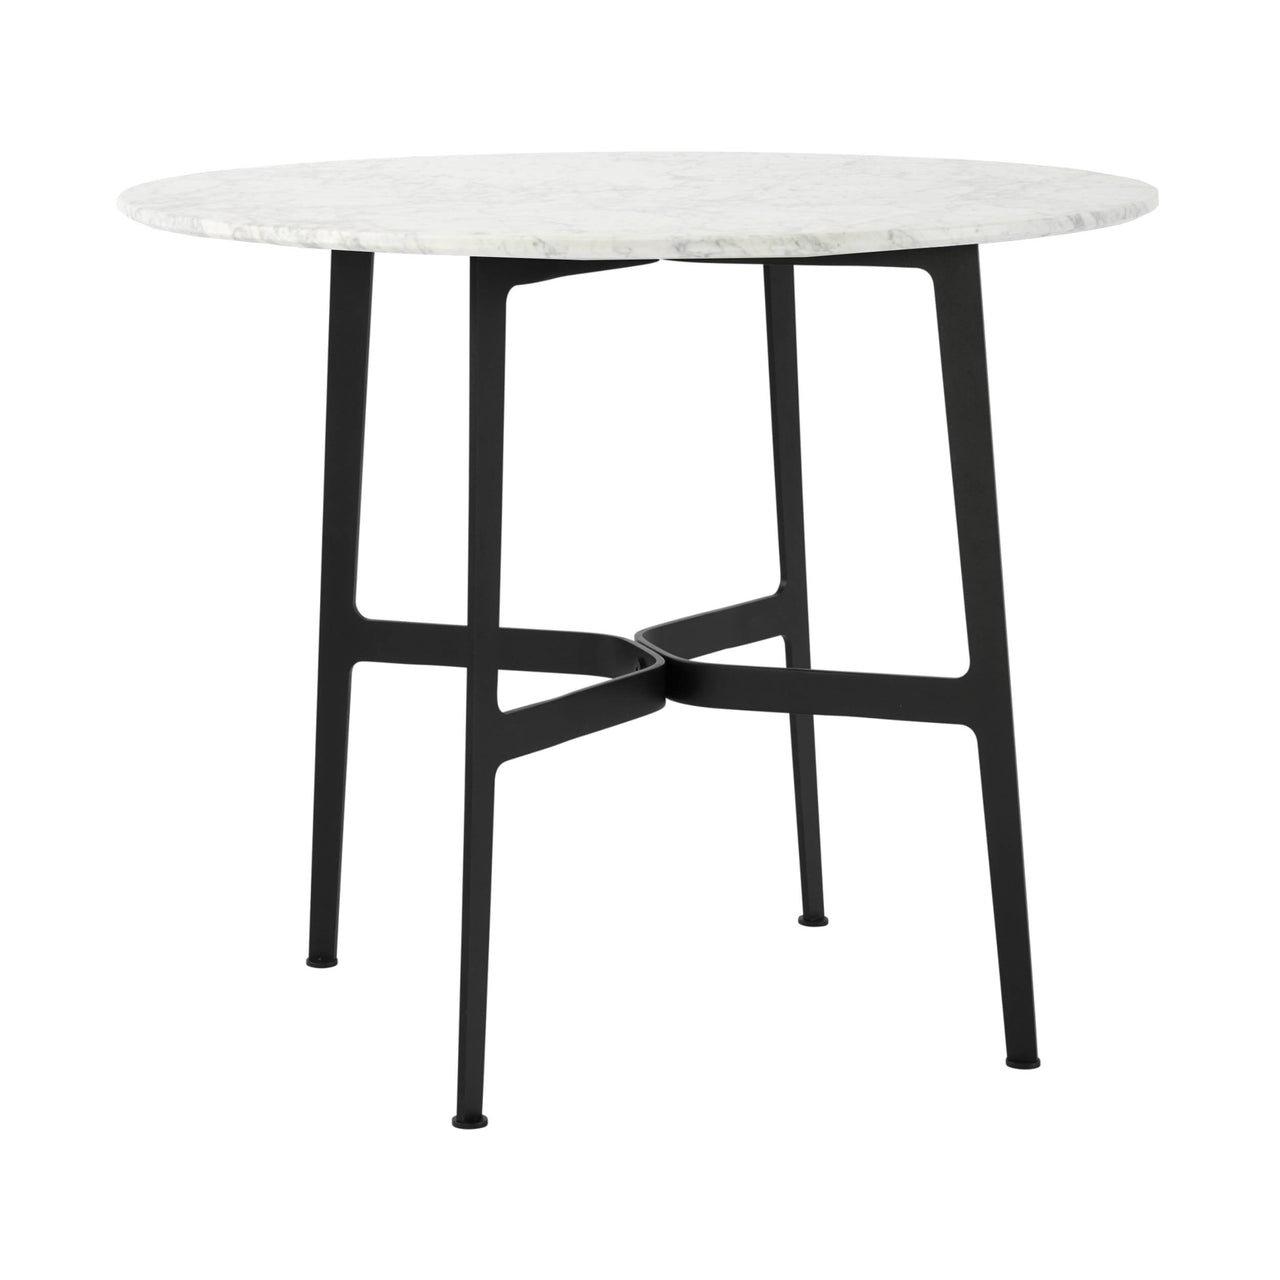 Eileen Circular Dining Table: Small + Black + White Marble